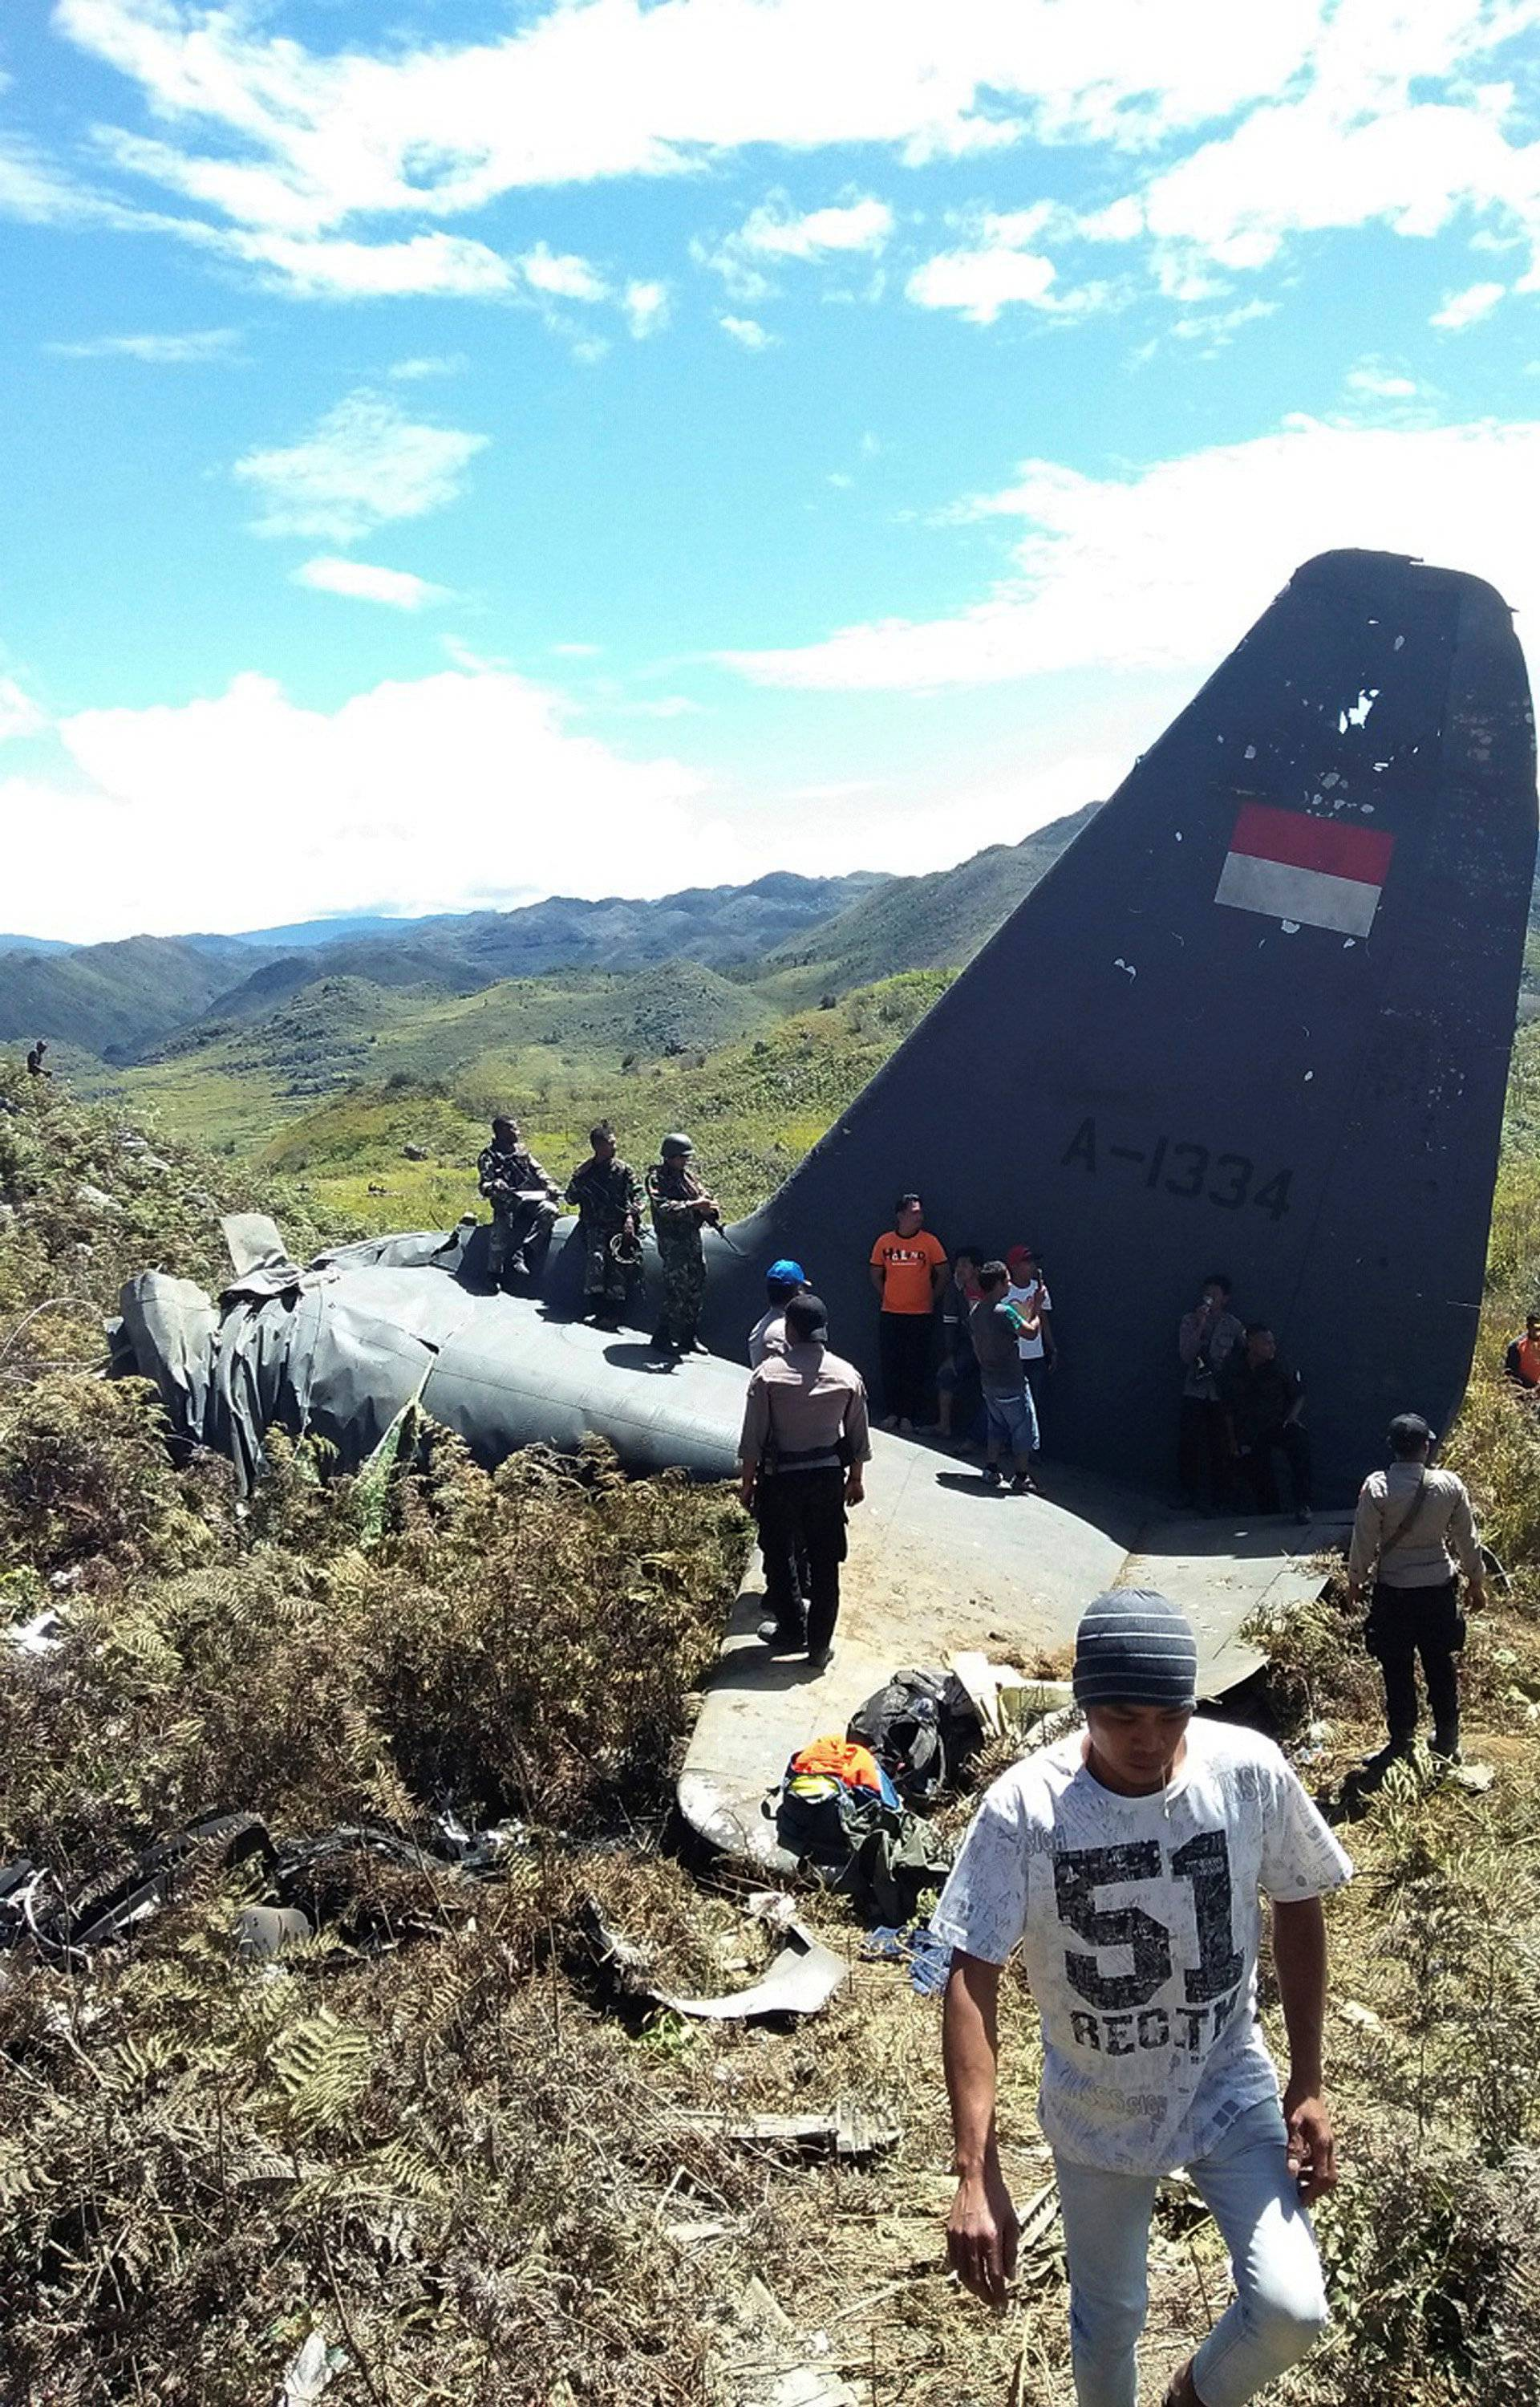 Rescue teams and locals are seen at the crash site of Indonesian air force transport plane which killed all 13 people aboard, on Mount Lisuwa, near Wamena in the remote region of Papua, Indonesia